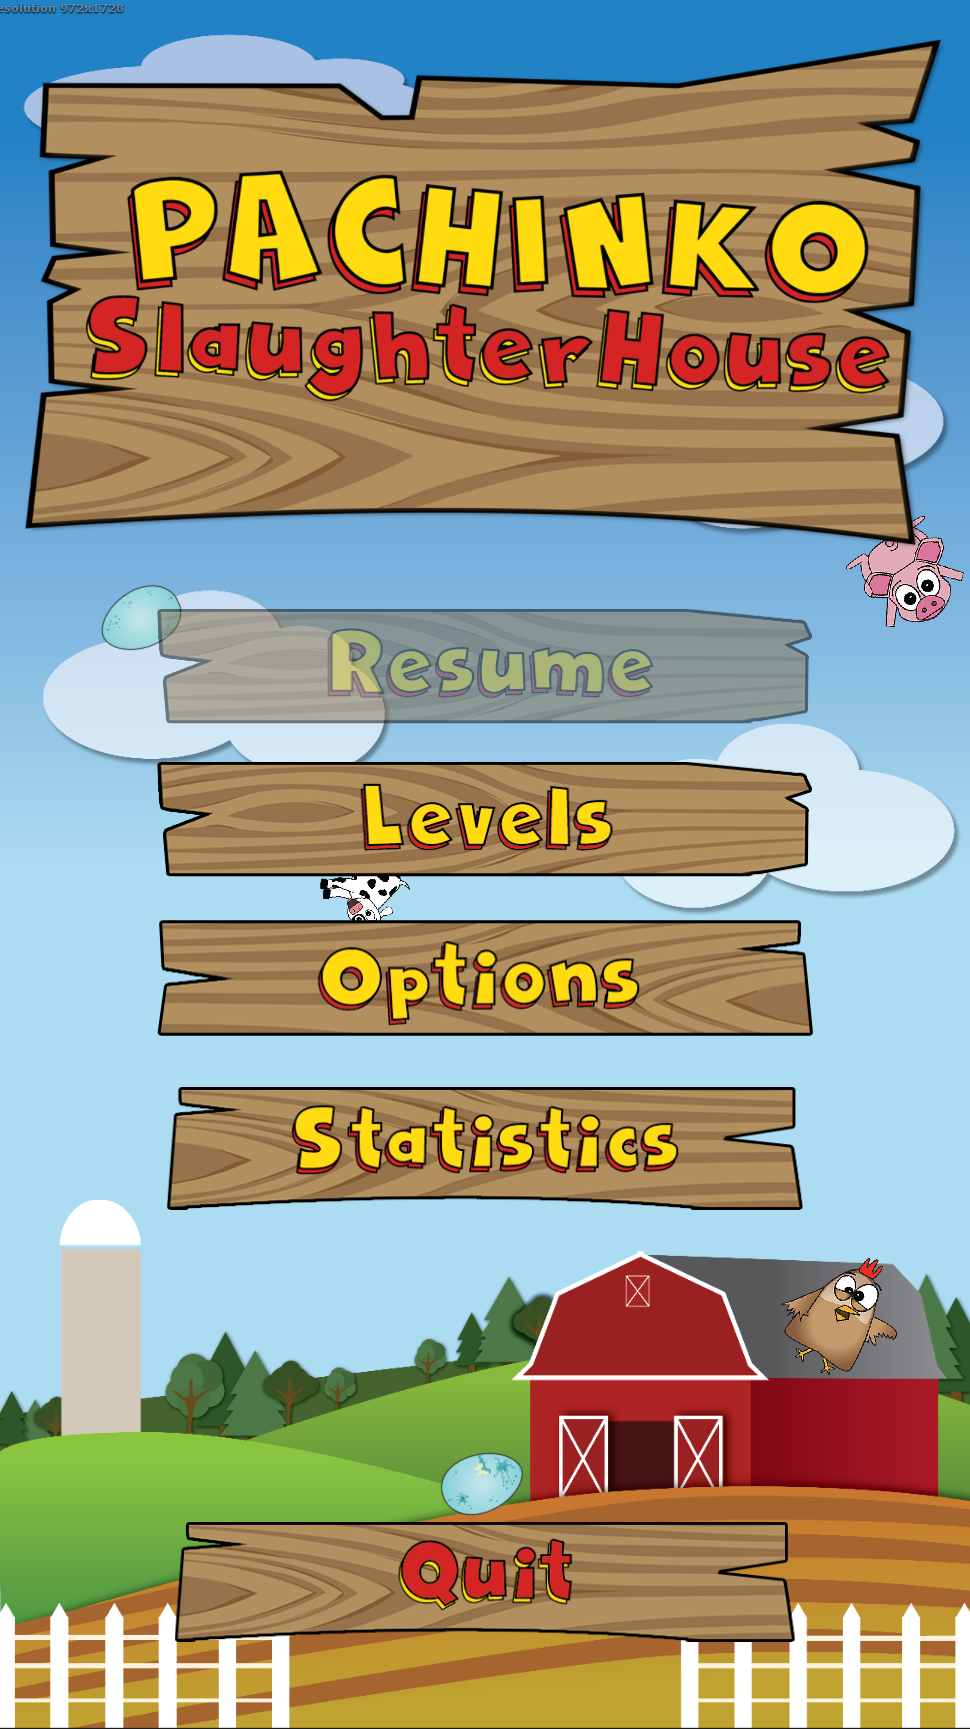 Main Menu Screen